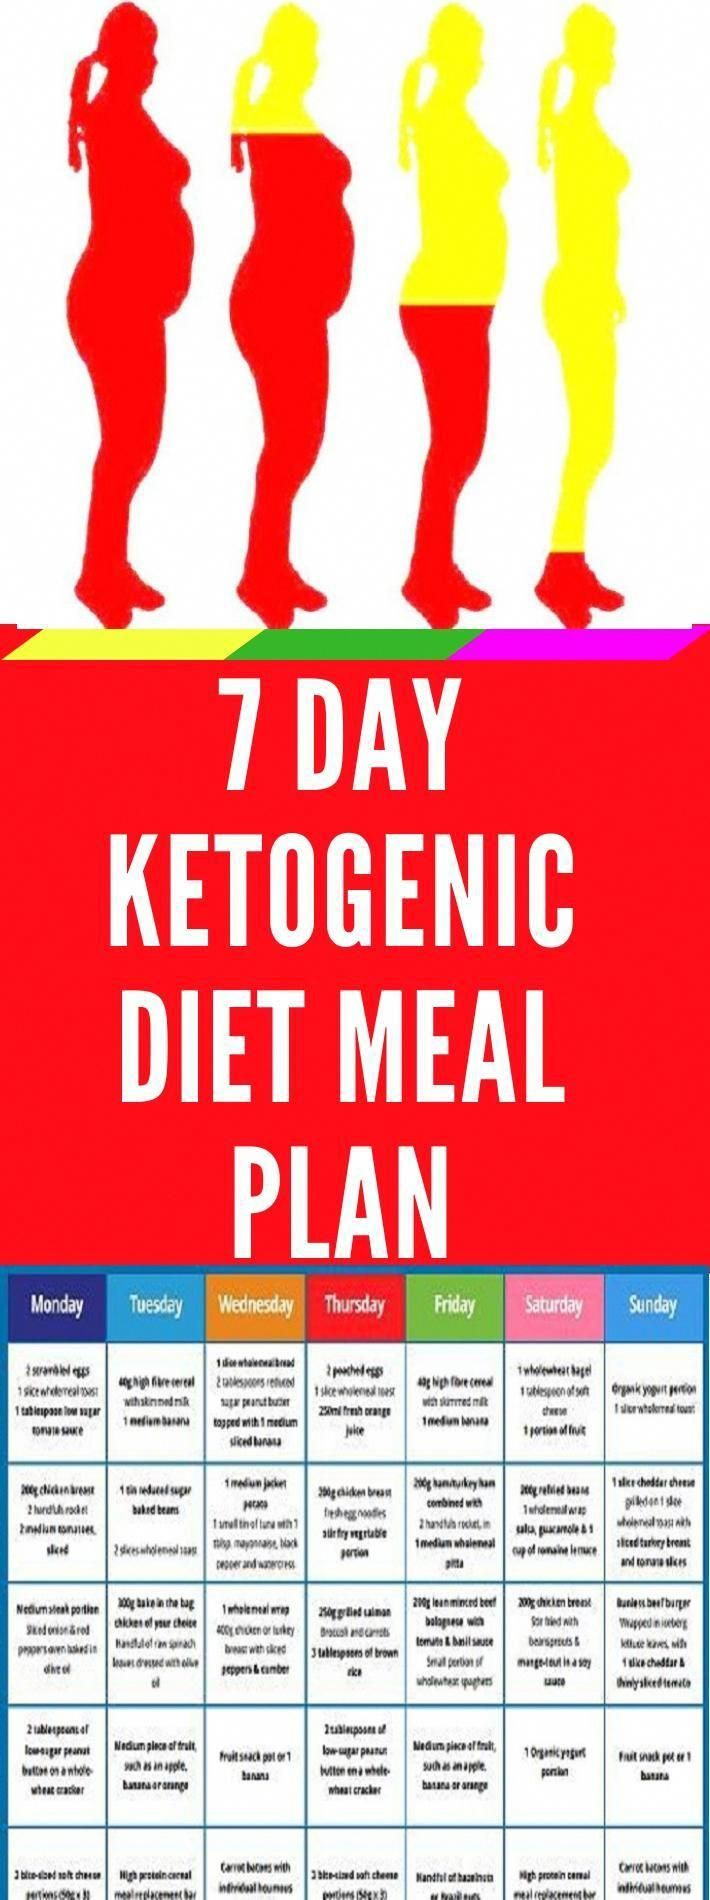 1Week Ketogenic Diet Meal Plan Intended To Fight Heart Disease Diabetes Cance